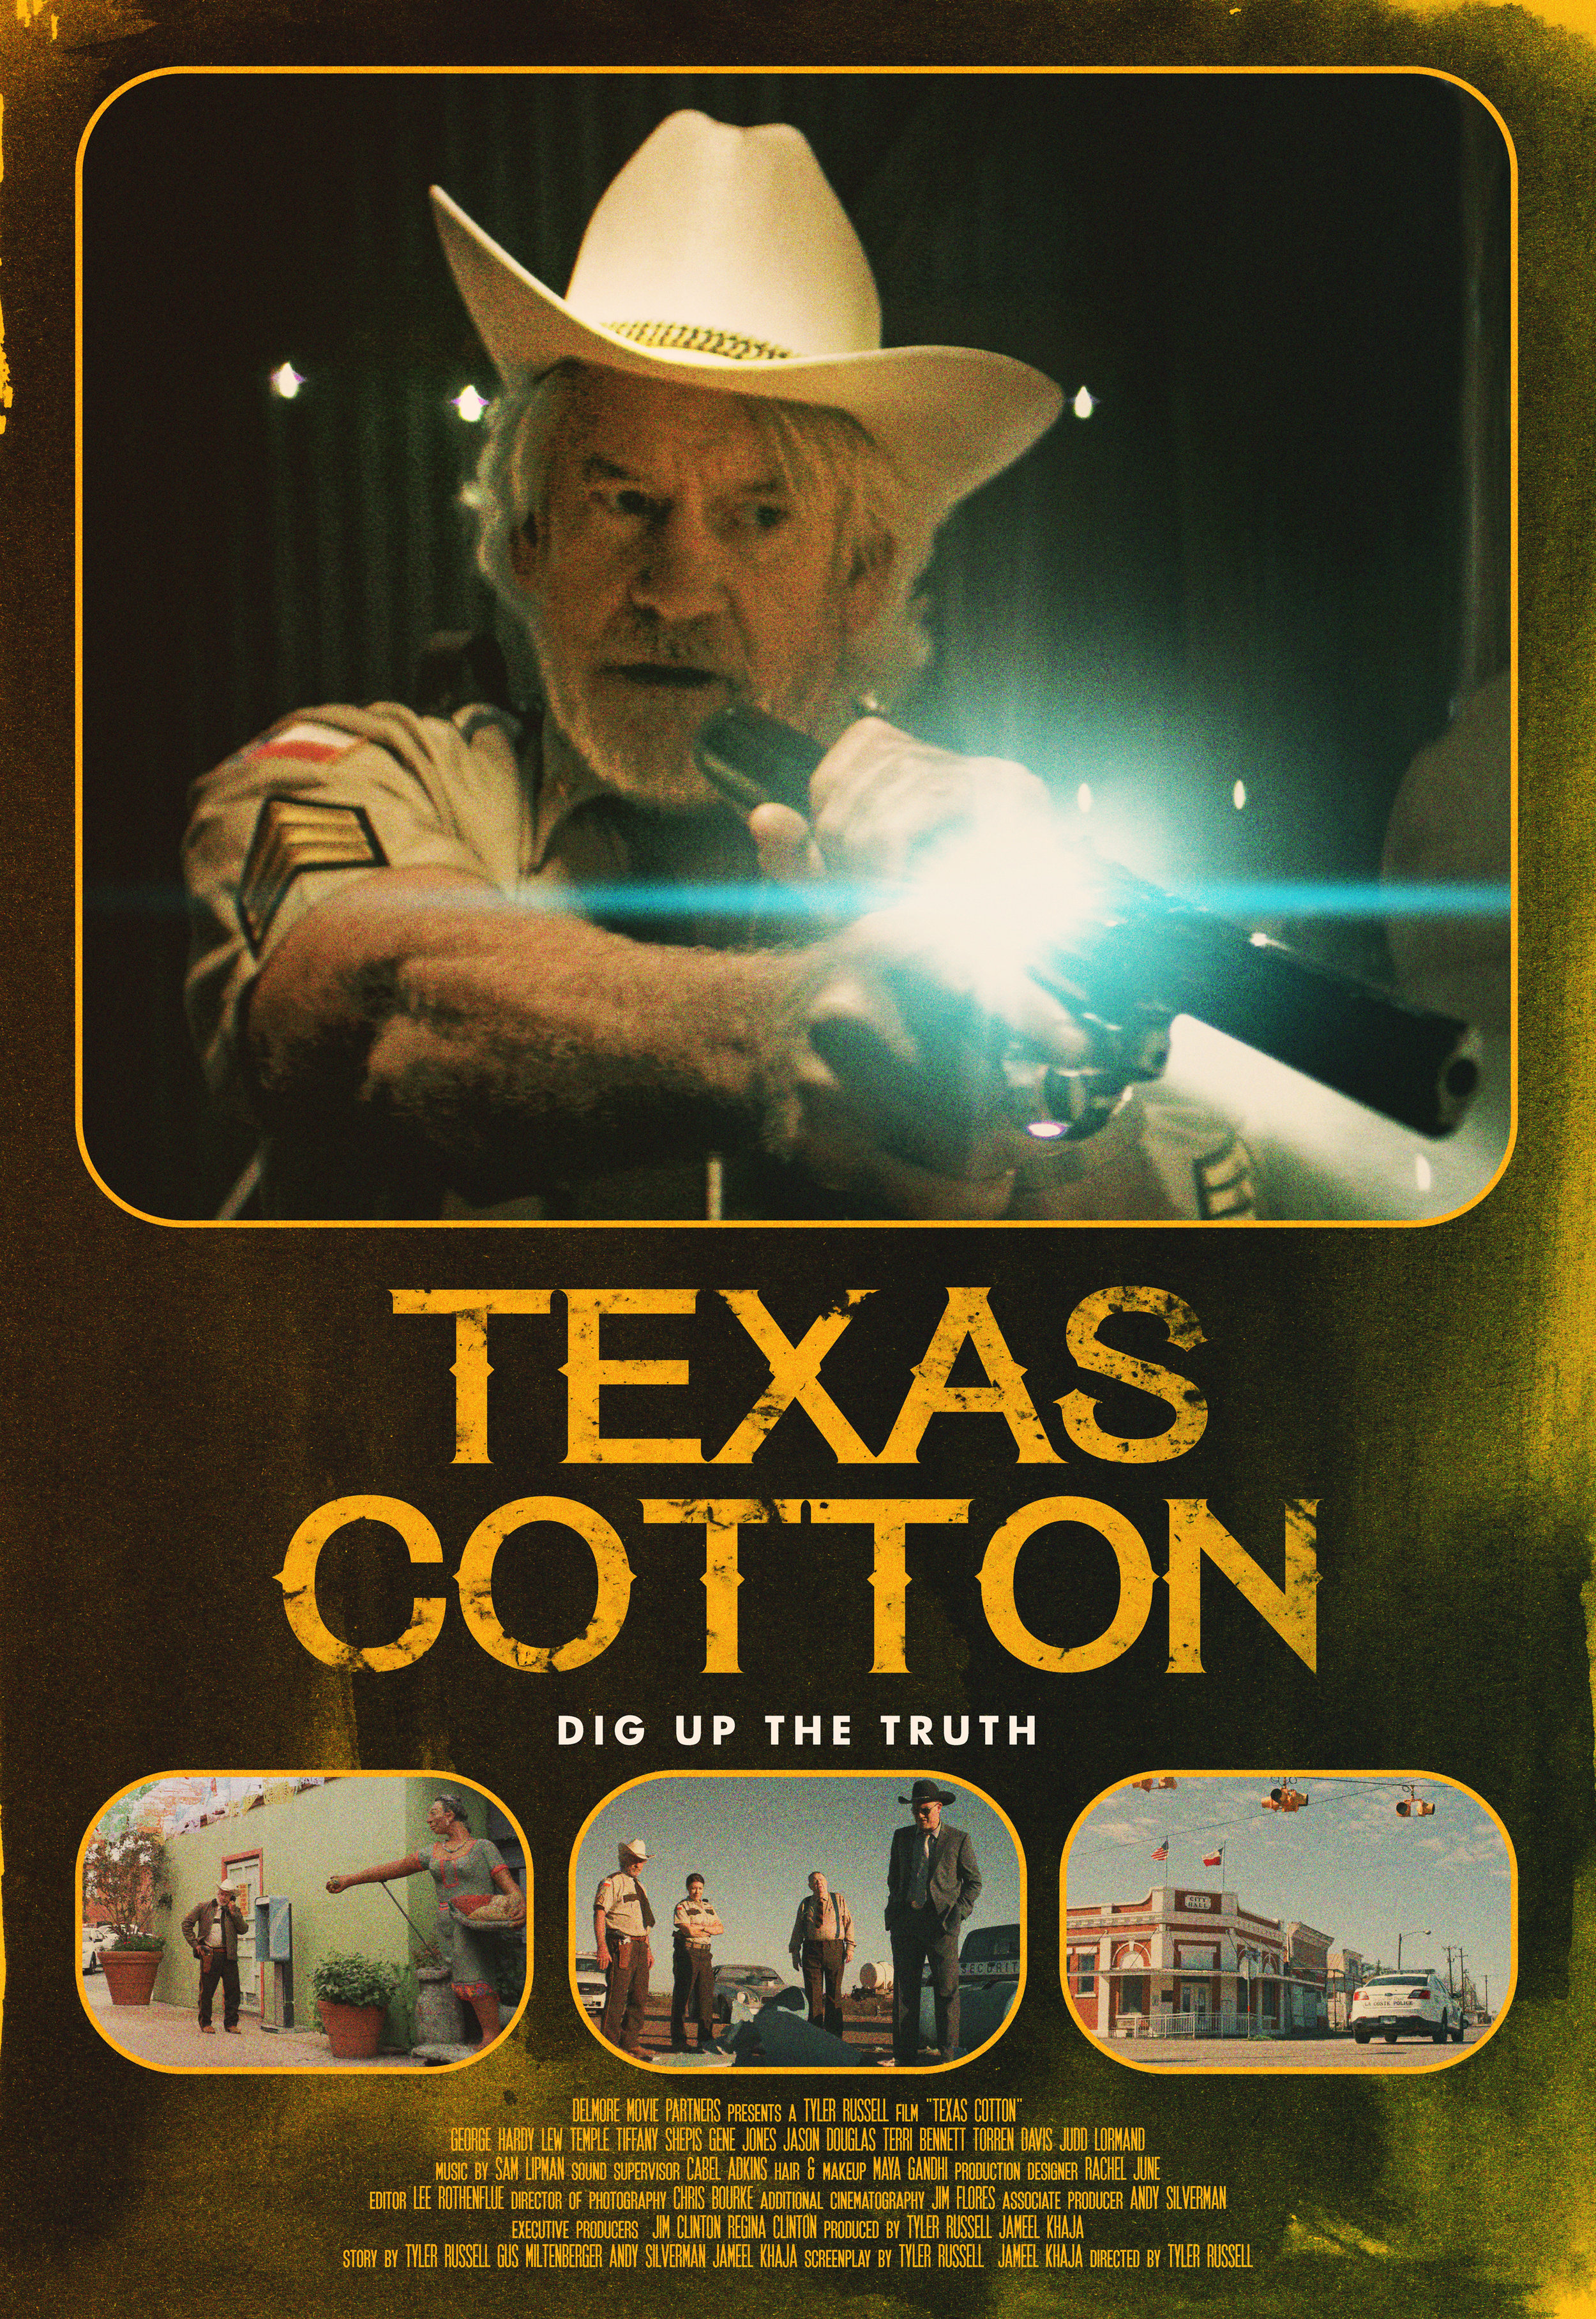 Watch Now On : - Amazon Prime - http://bit.ly/texascottonamazonYouTube - http://bit.ly/texascottonyoutubeGoogle Play - http://bit.ly/texascottongoogleplay